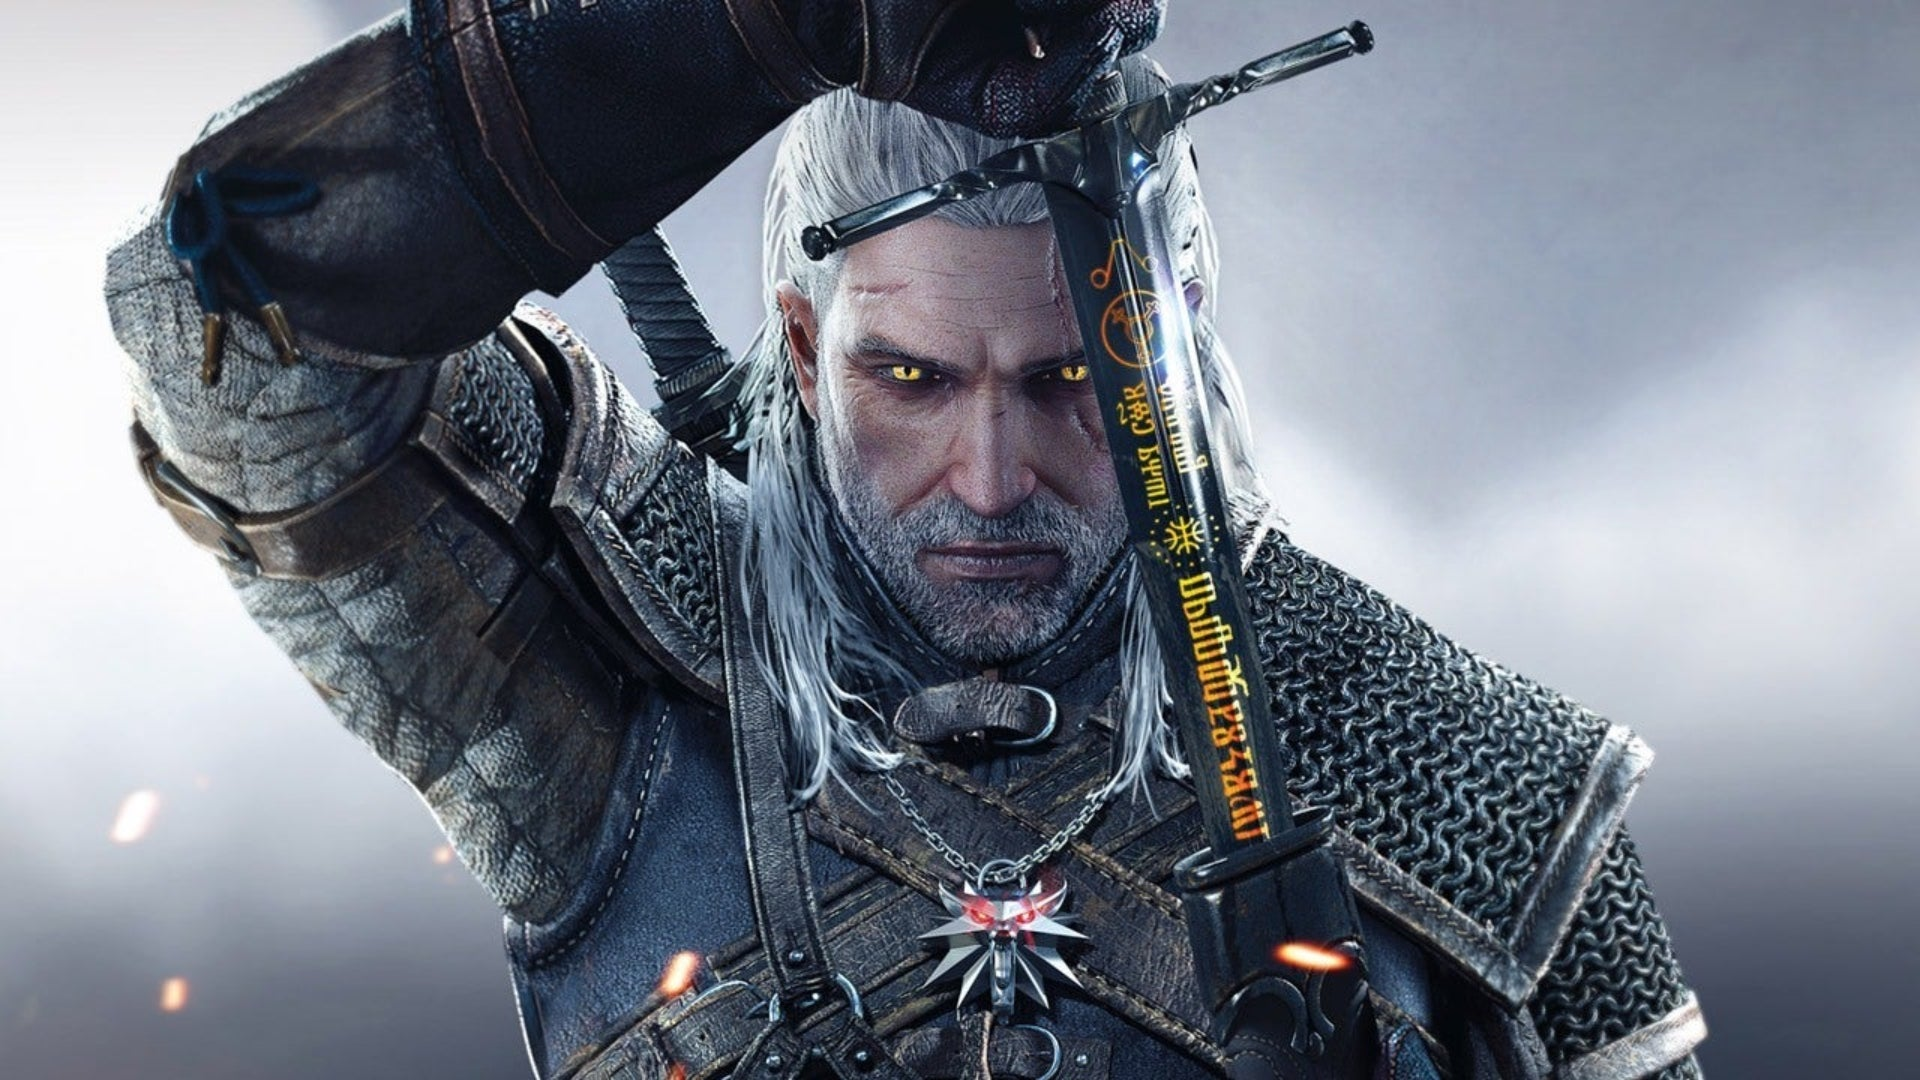 witcher 3 1621914111351.jpg?width=640&fit=bounds&height=480&quality=20&dpr=0